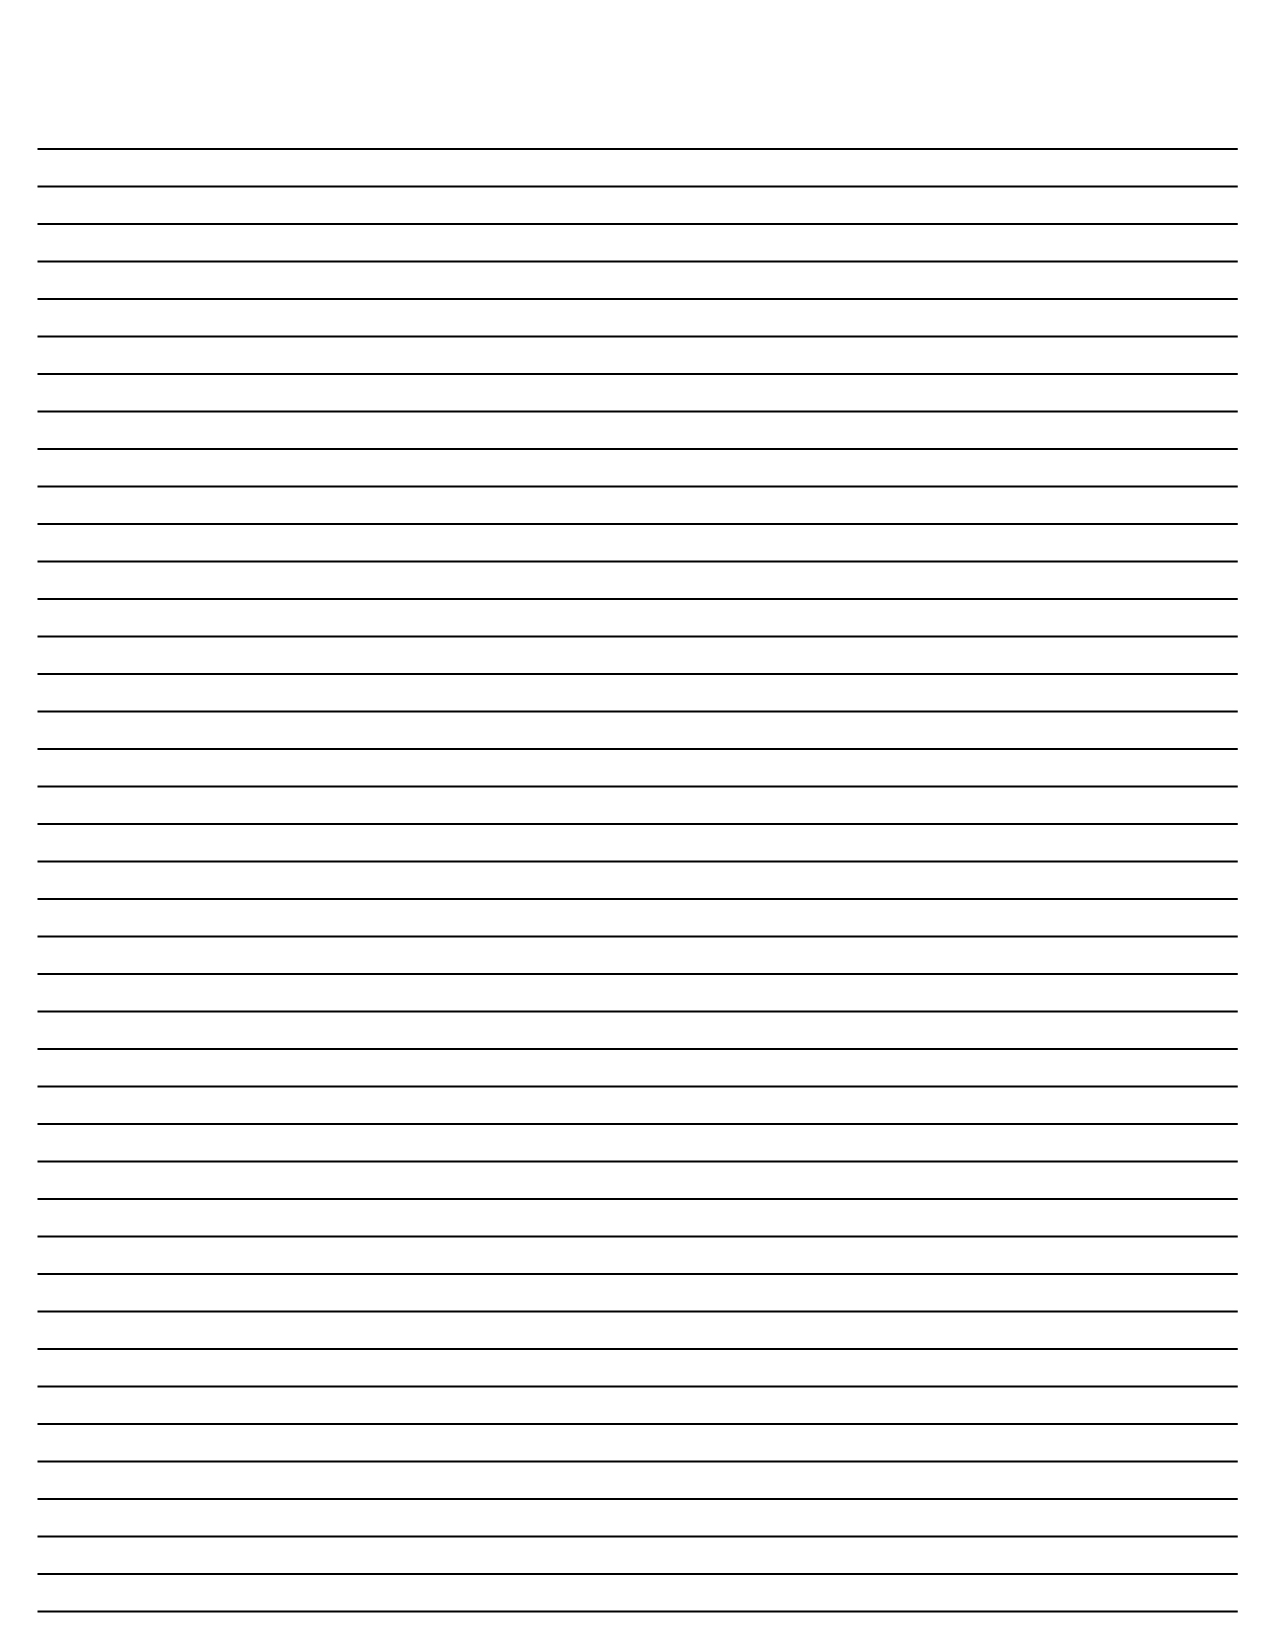 Search Results For Elementary Lined Writing Paper Template Calendar